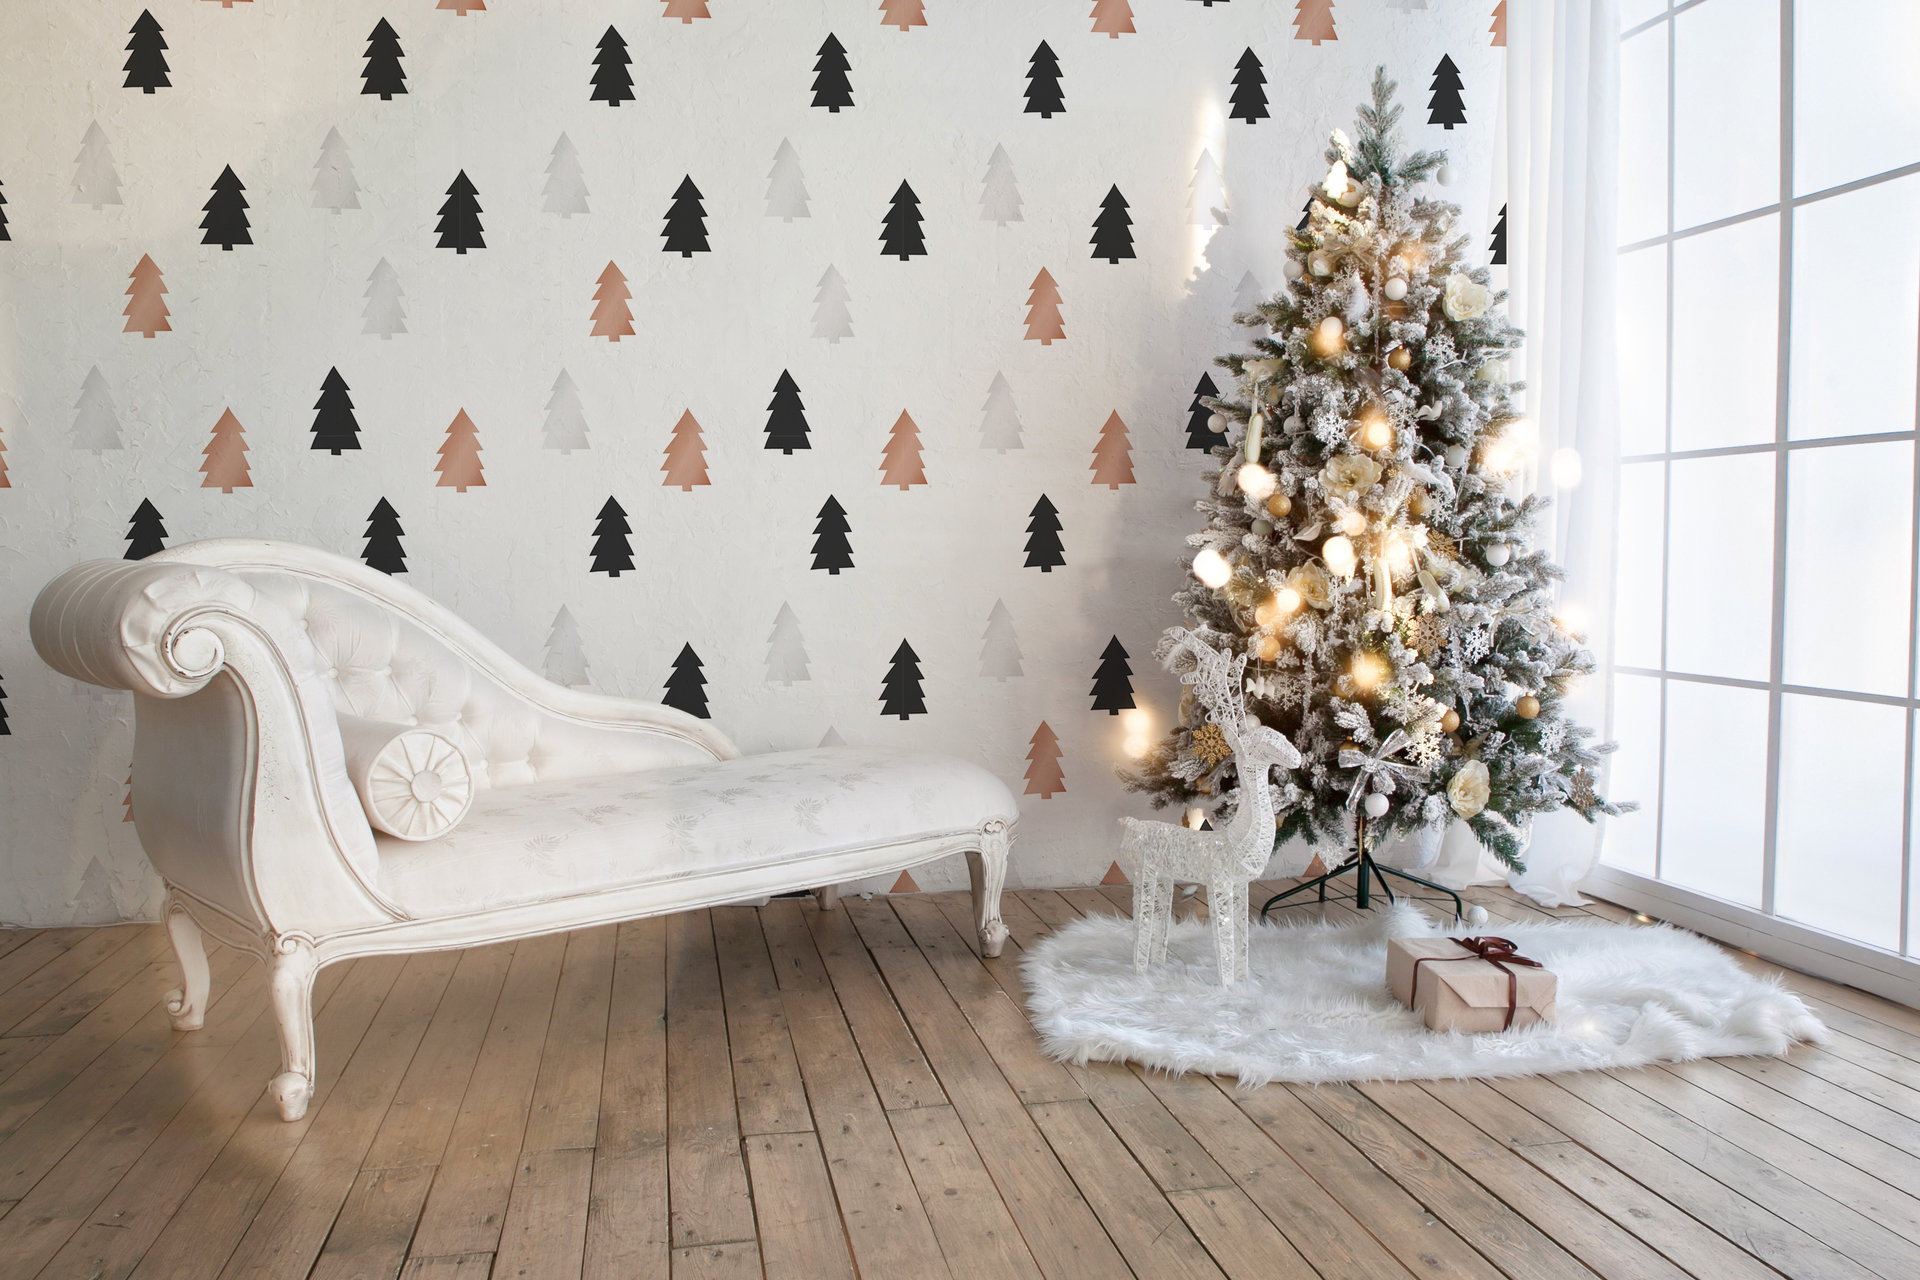 All you need for Christmas are Pixers' patterns!